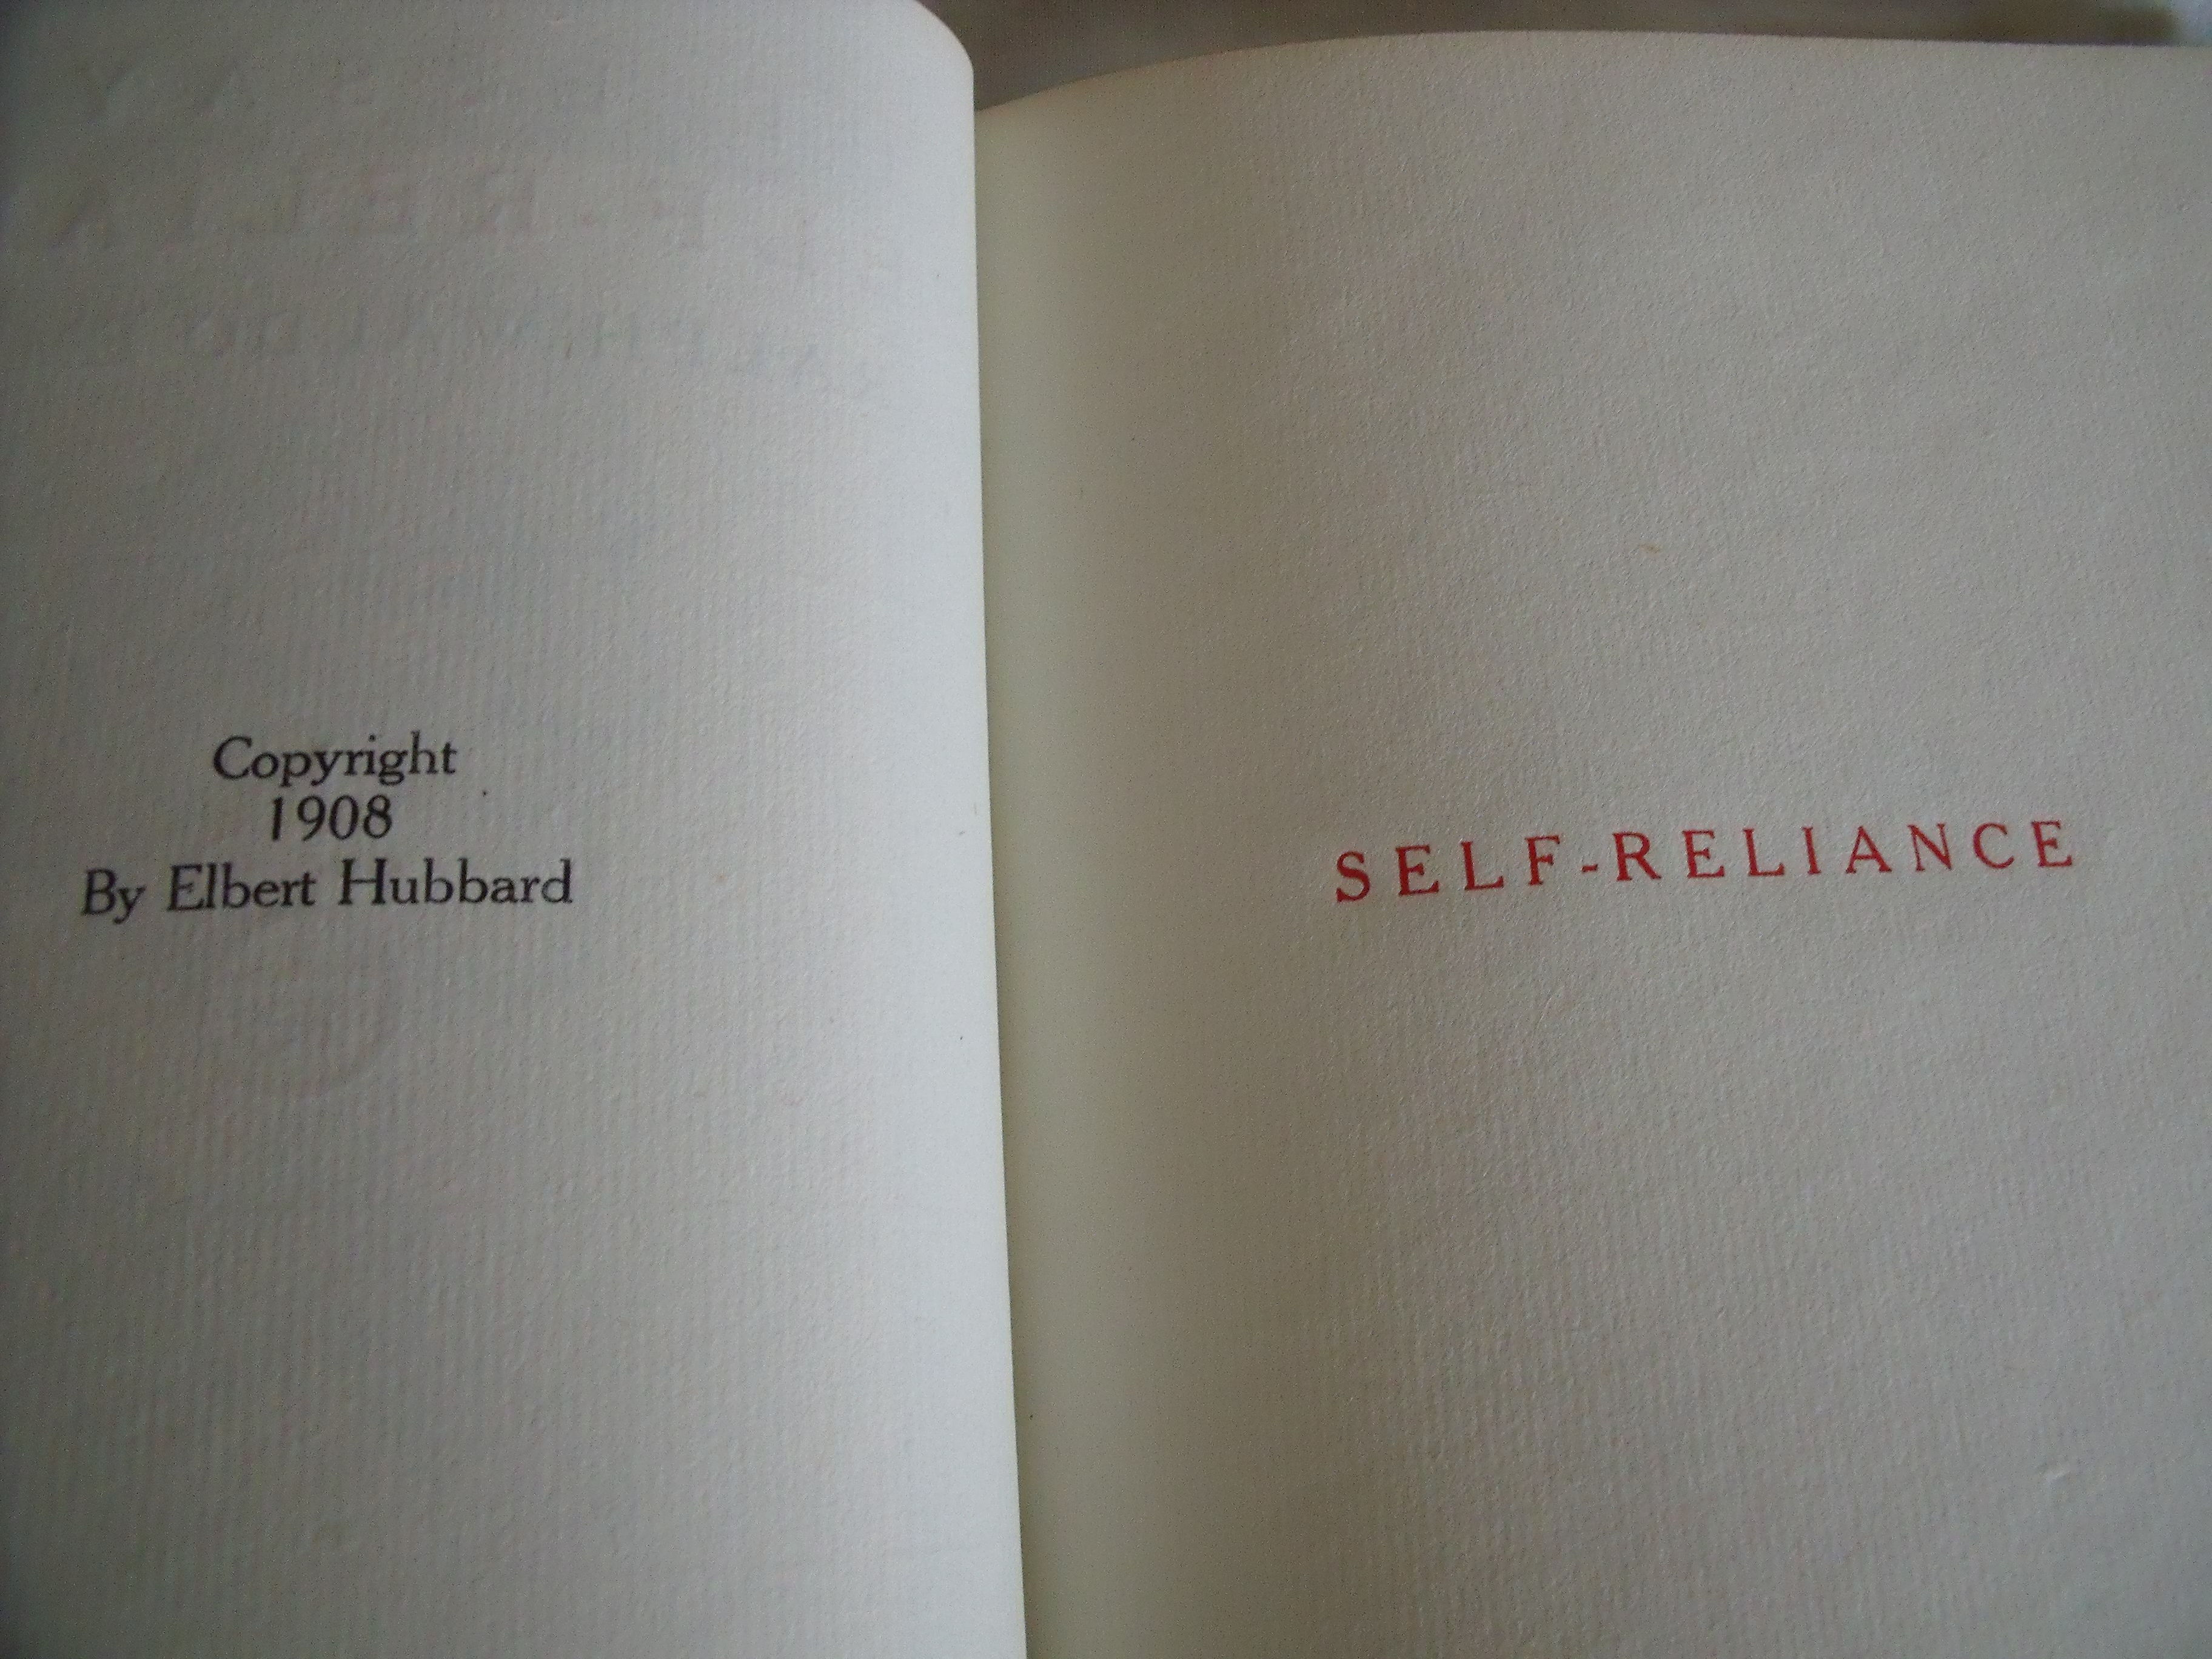 emerson self reliance essay full text Self-reliance: self-reliance, essay by ralph emerson's doctrine of self-sufficiency and self-reliance arose naturally from his any text you add should.